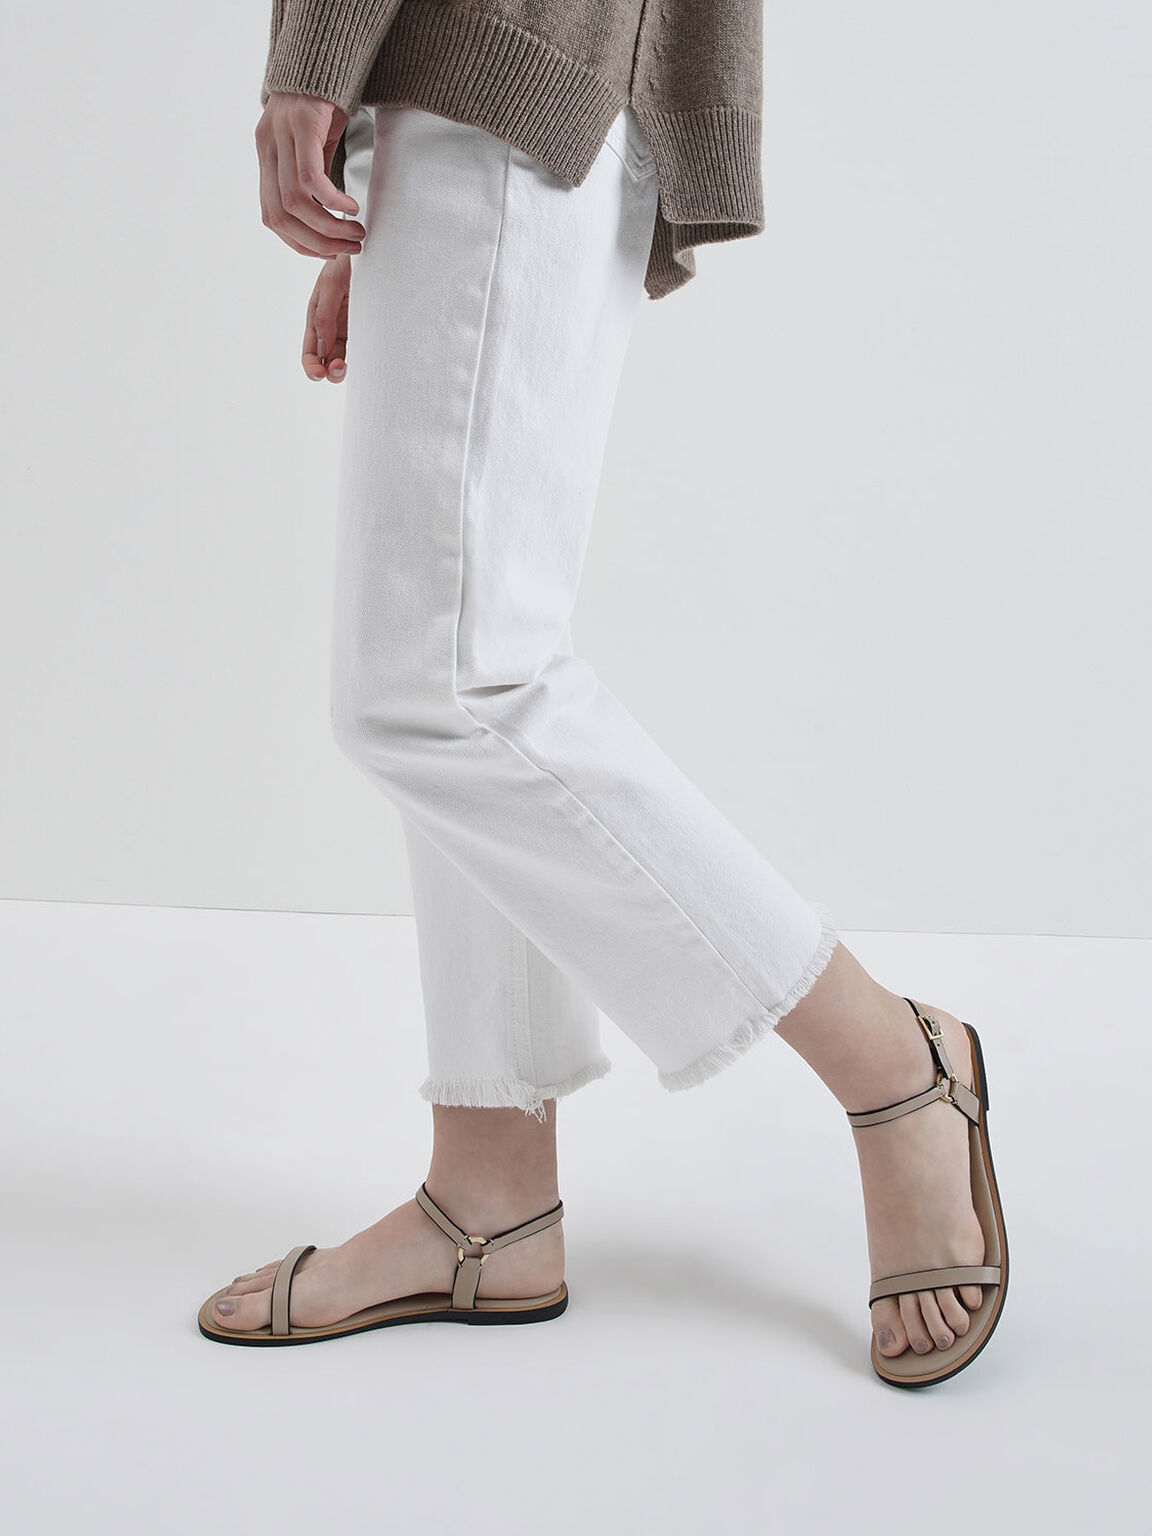 Flat Ankle Strap Sandals, Nude, hi-res